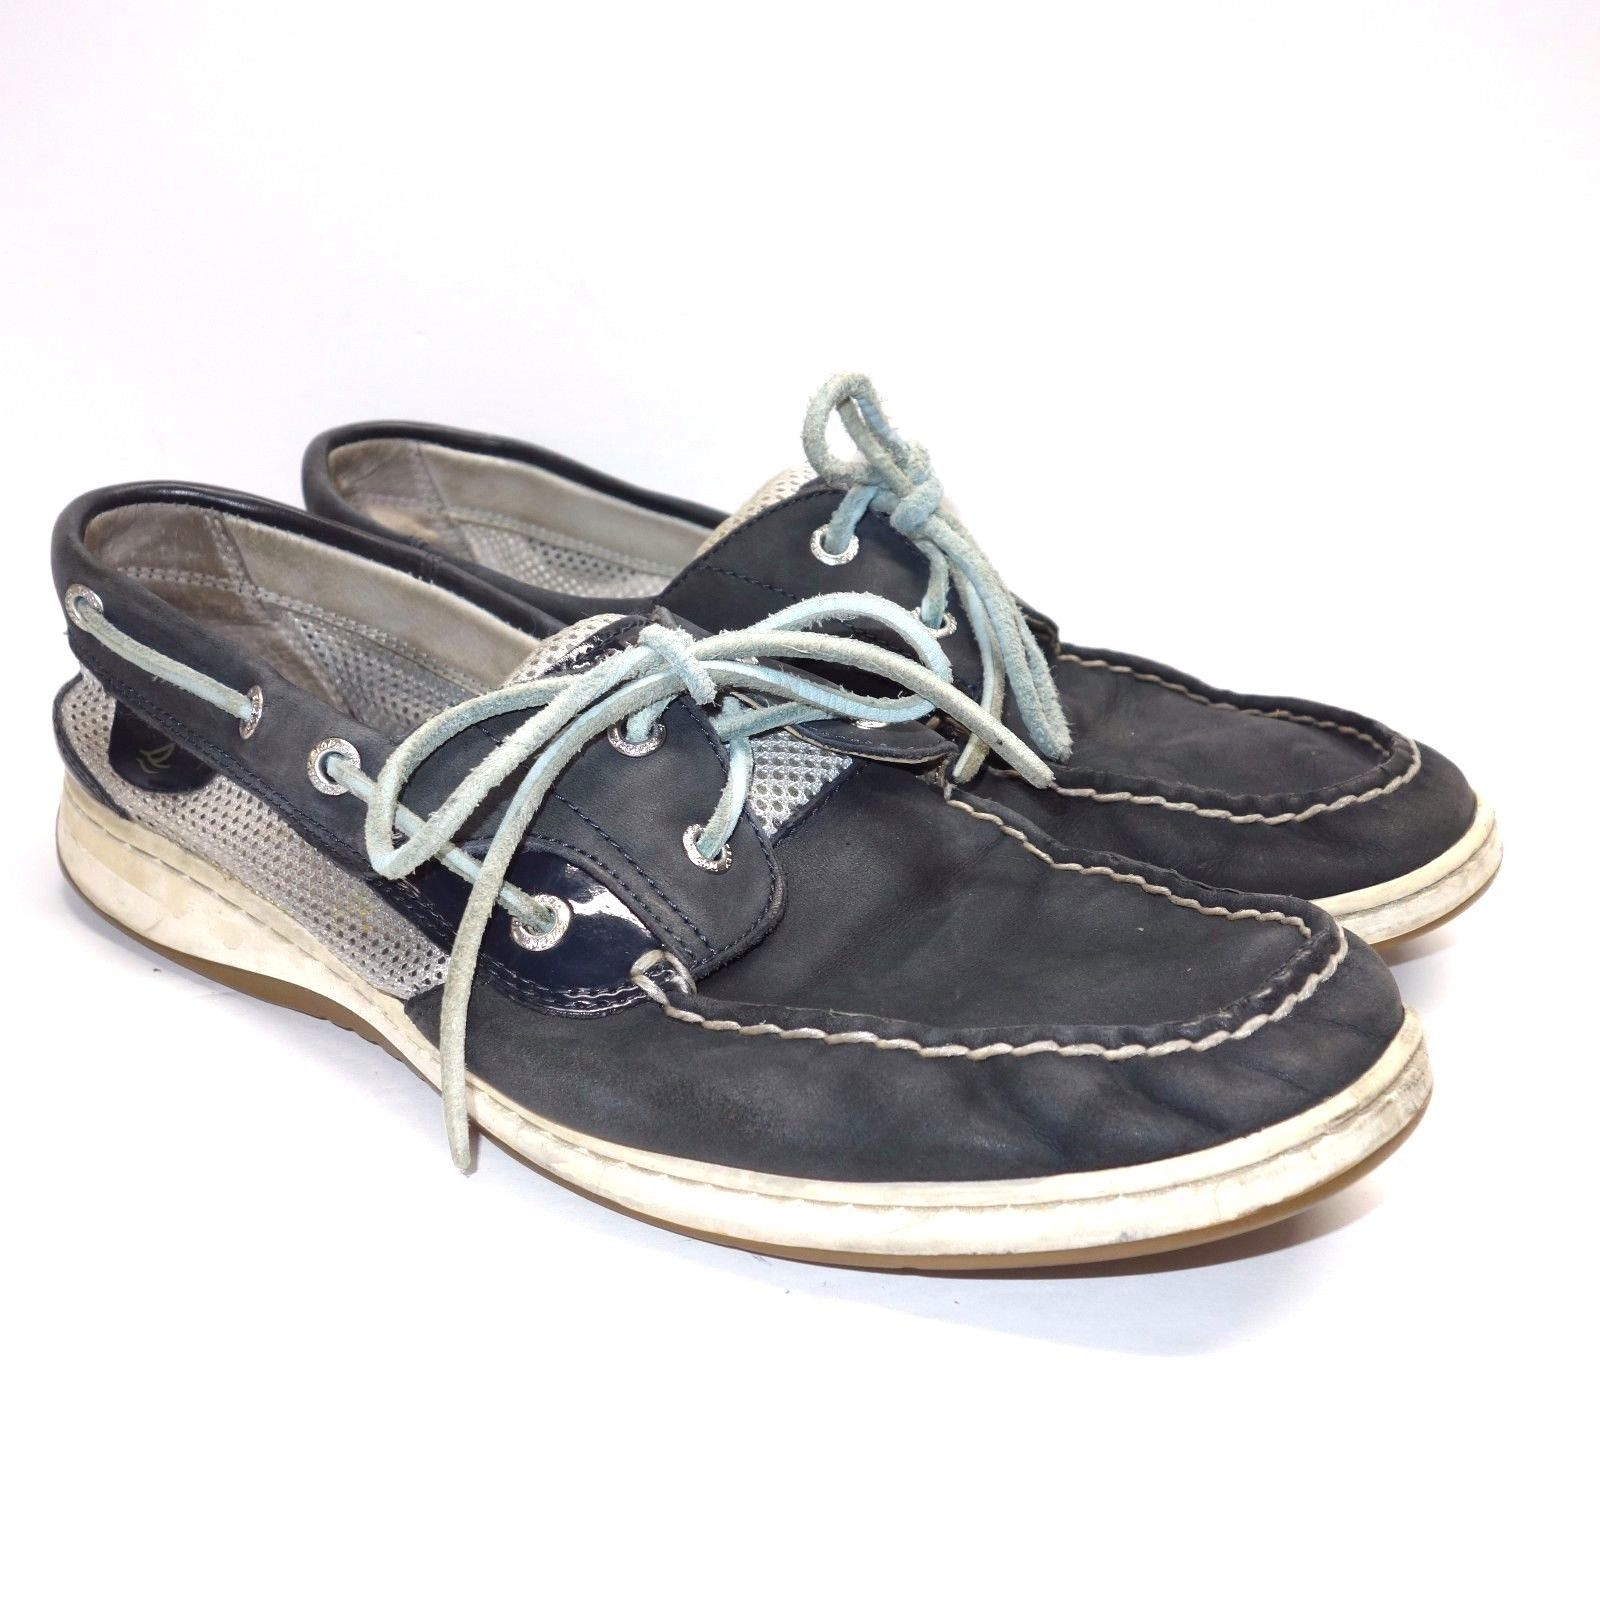 Intrepid Boat Shoe Navy White 6 M SPERRY Womens